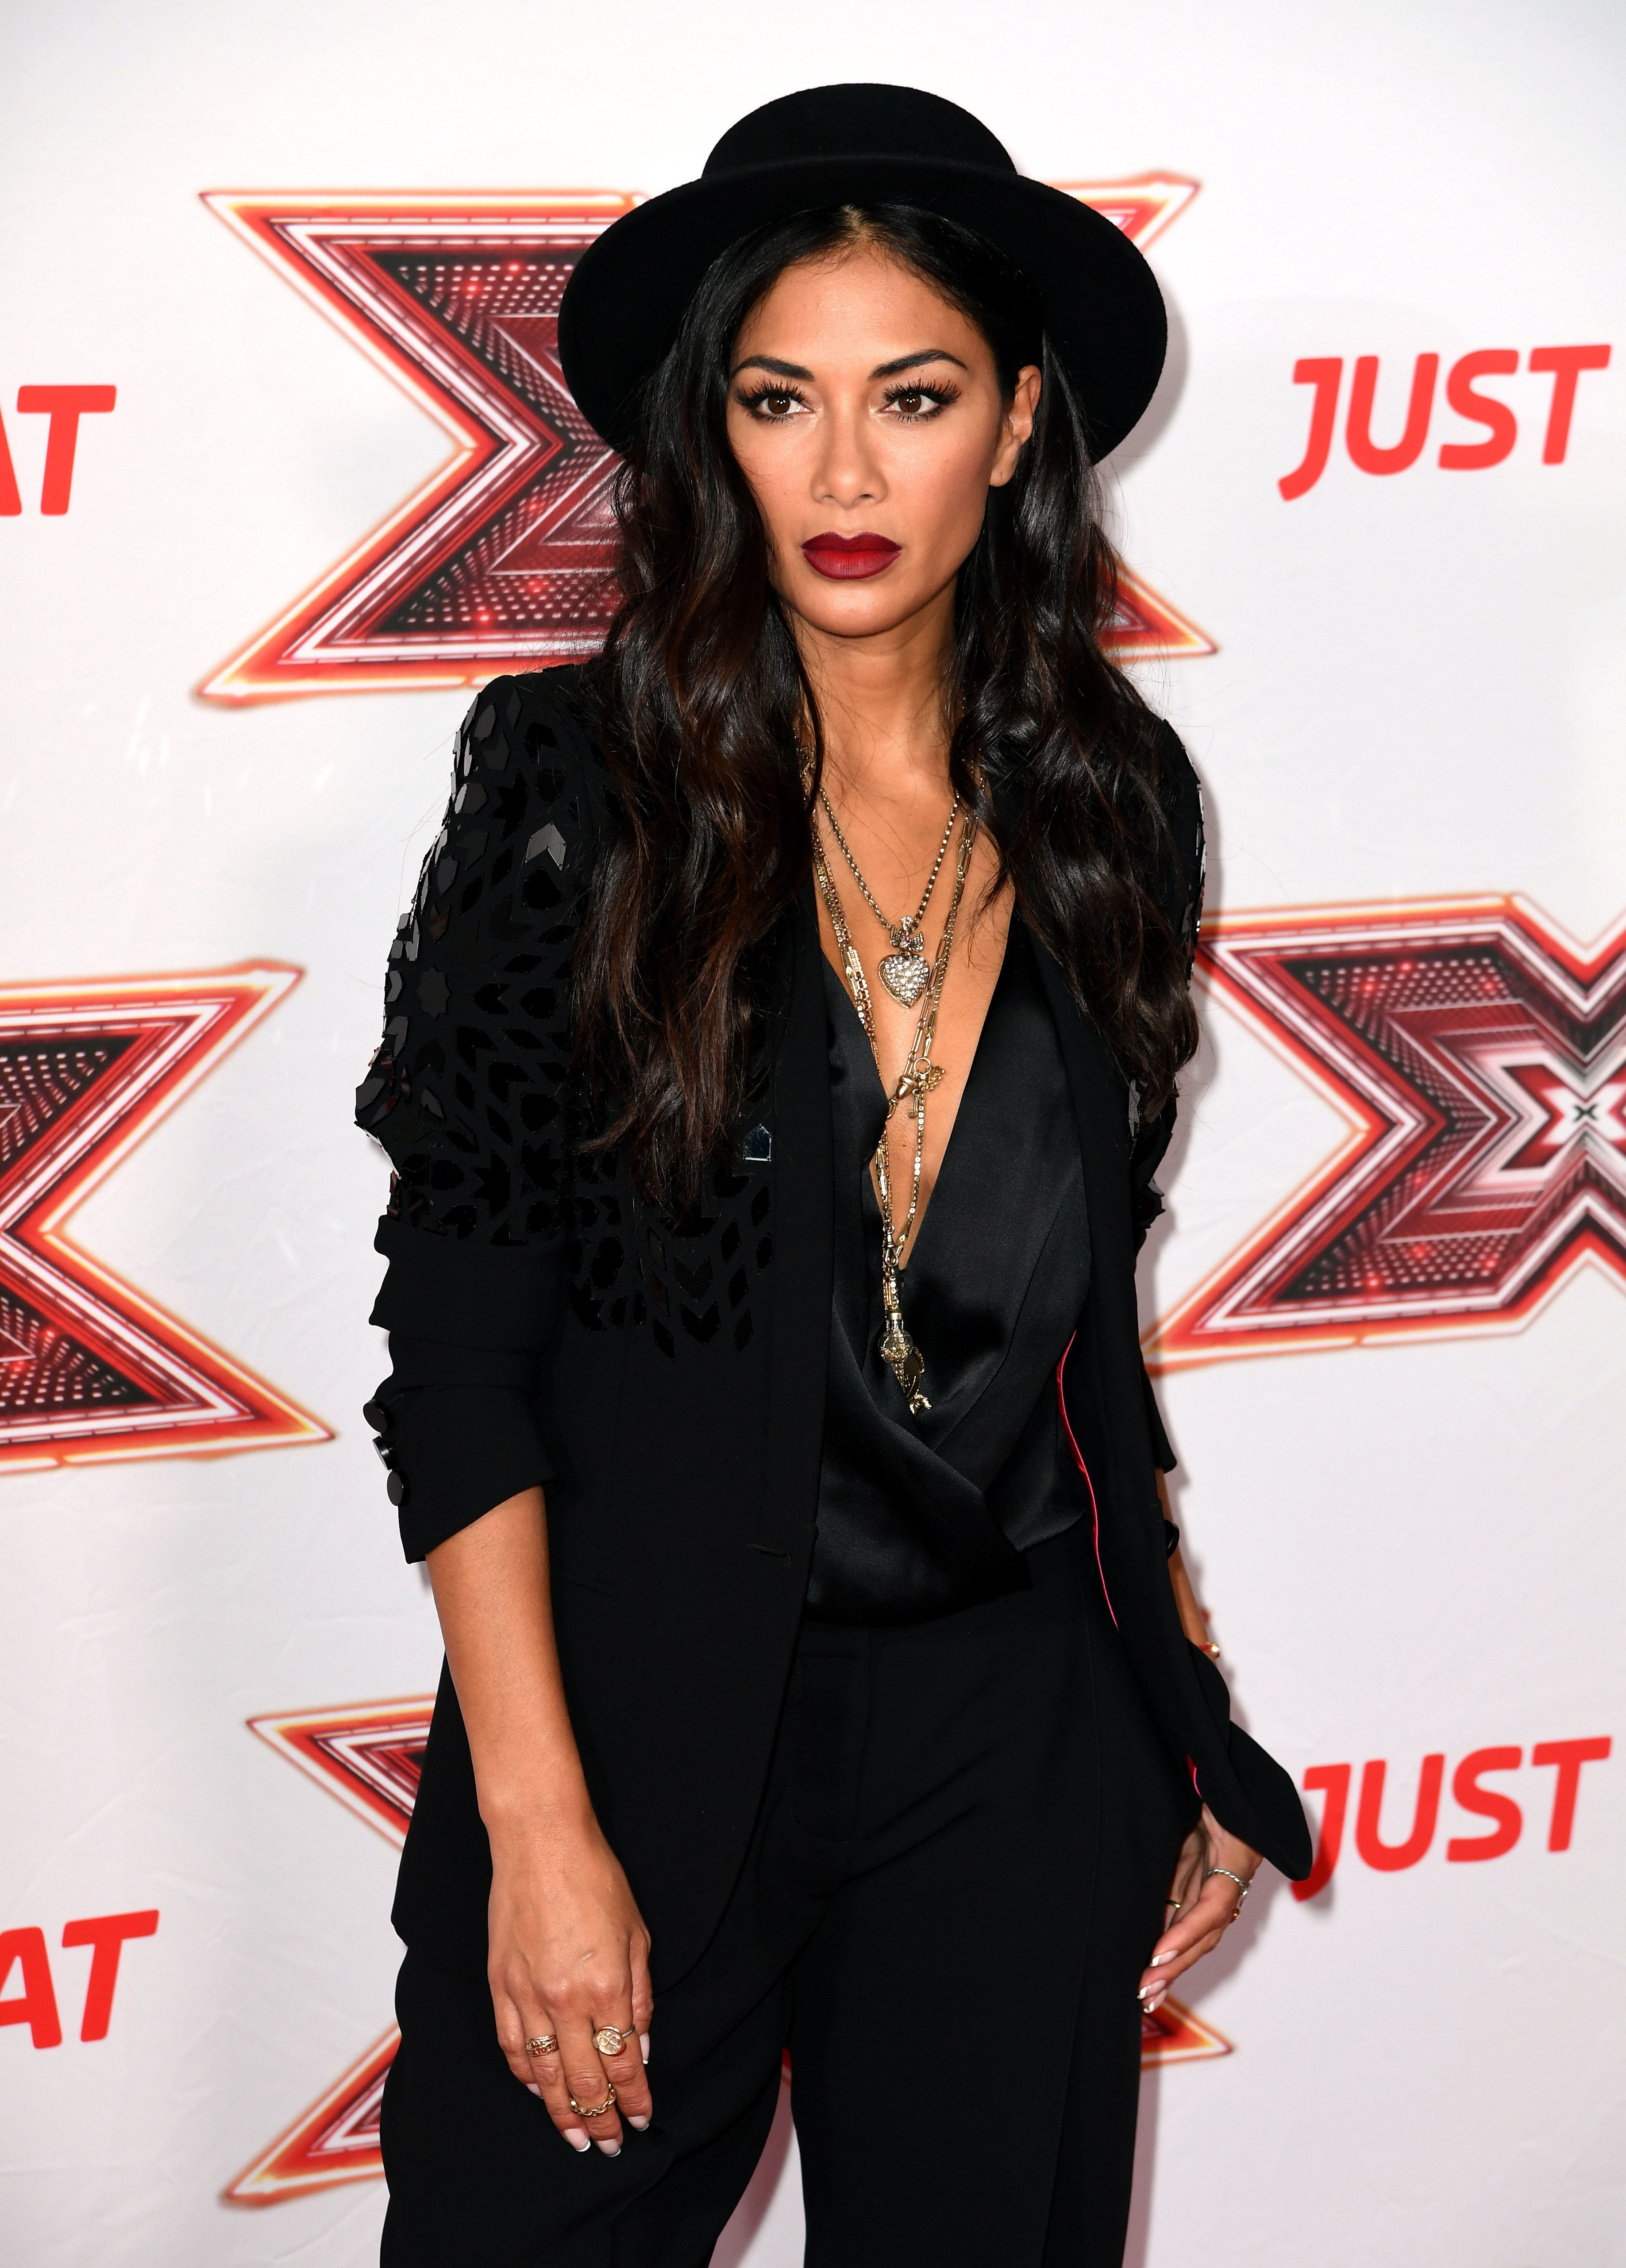 X Factor's Nicole Scherzinger Hits Back At Claims She Is Lying About Her